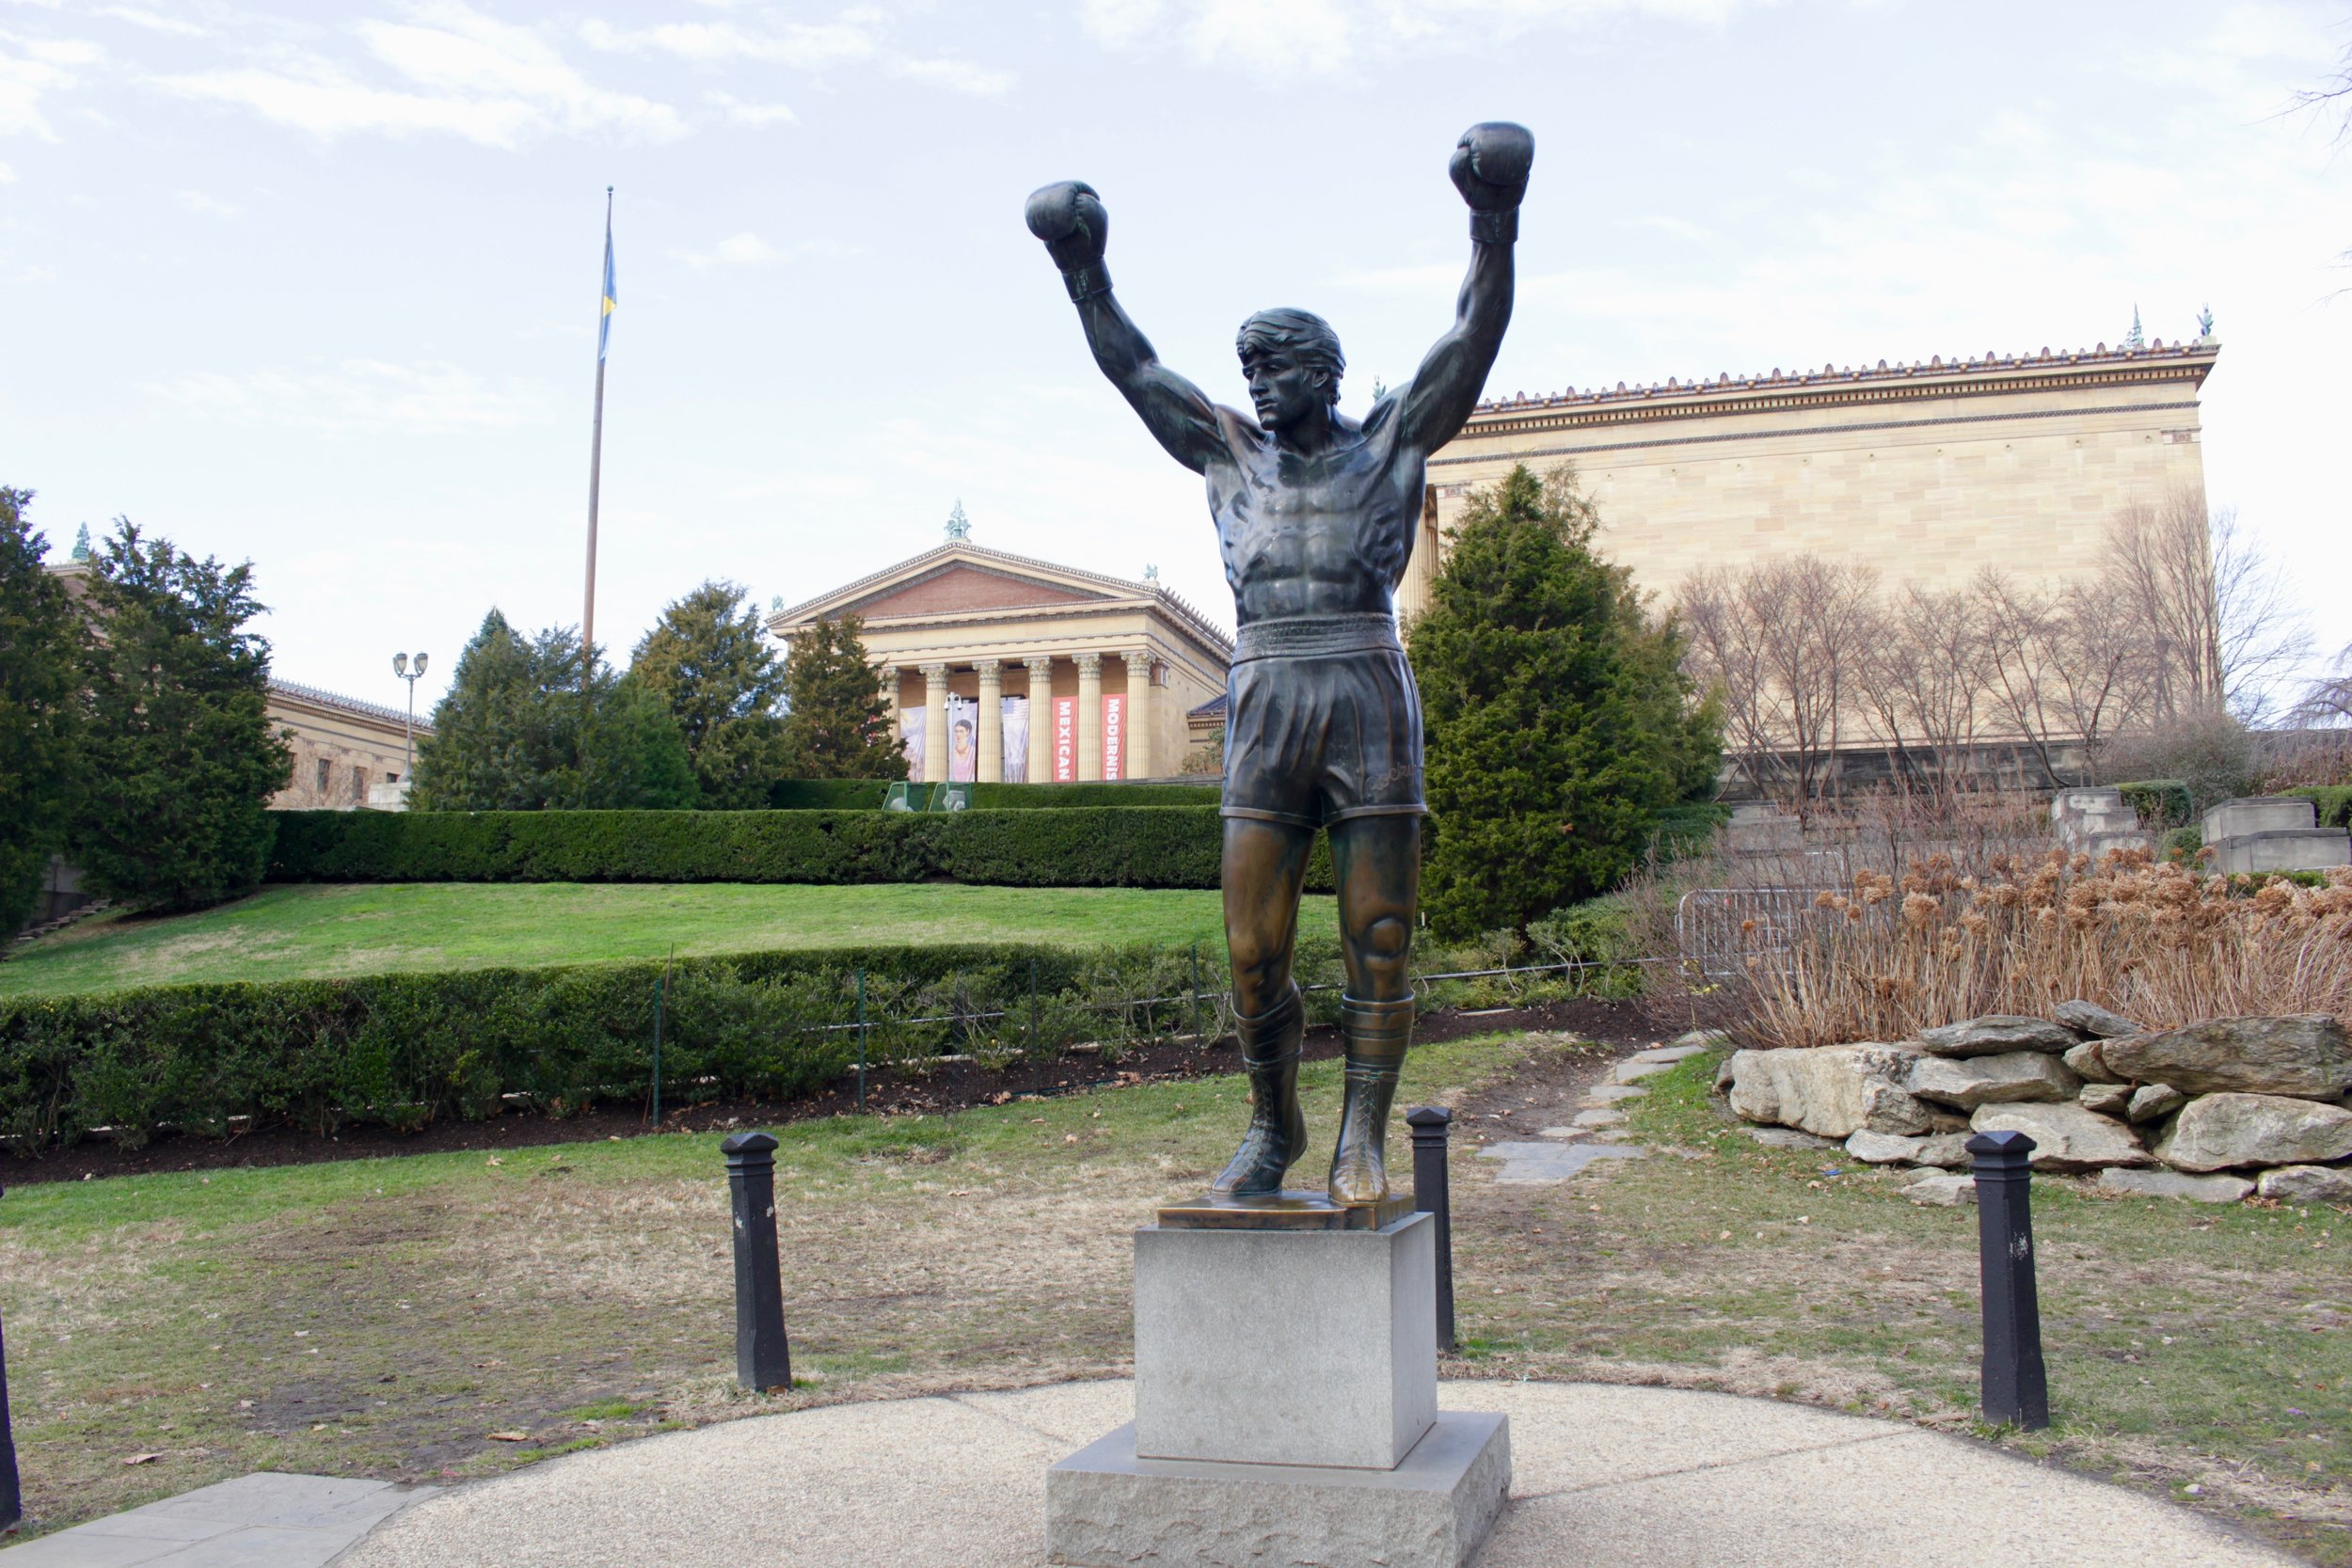 Yes, I'm aware Rocky is a fictional character. I still love the movie though!